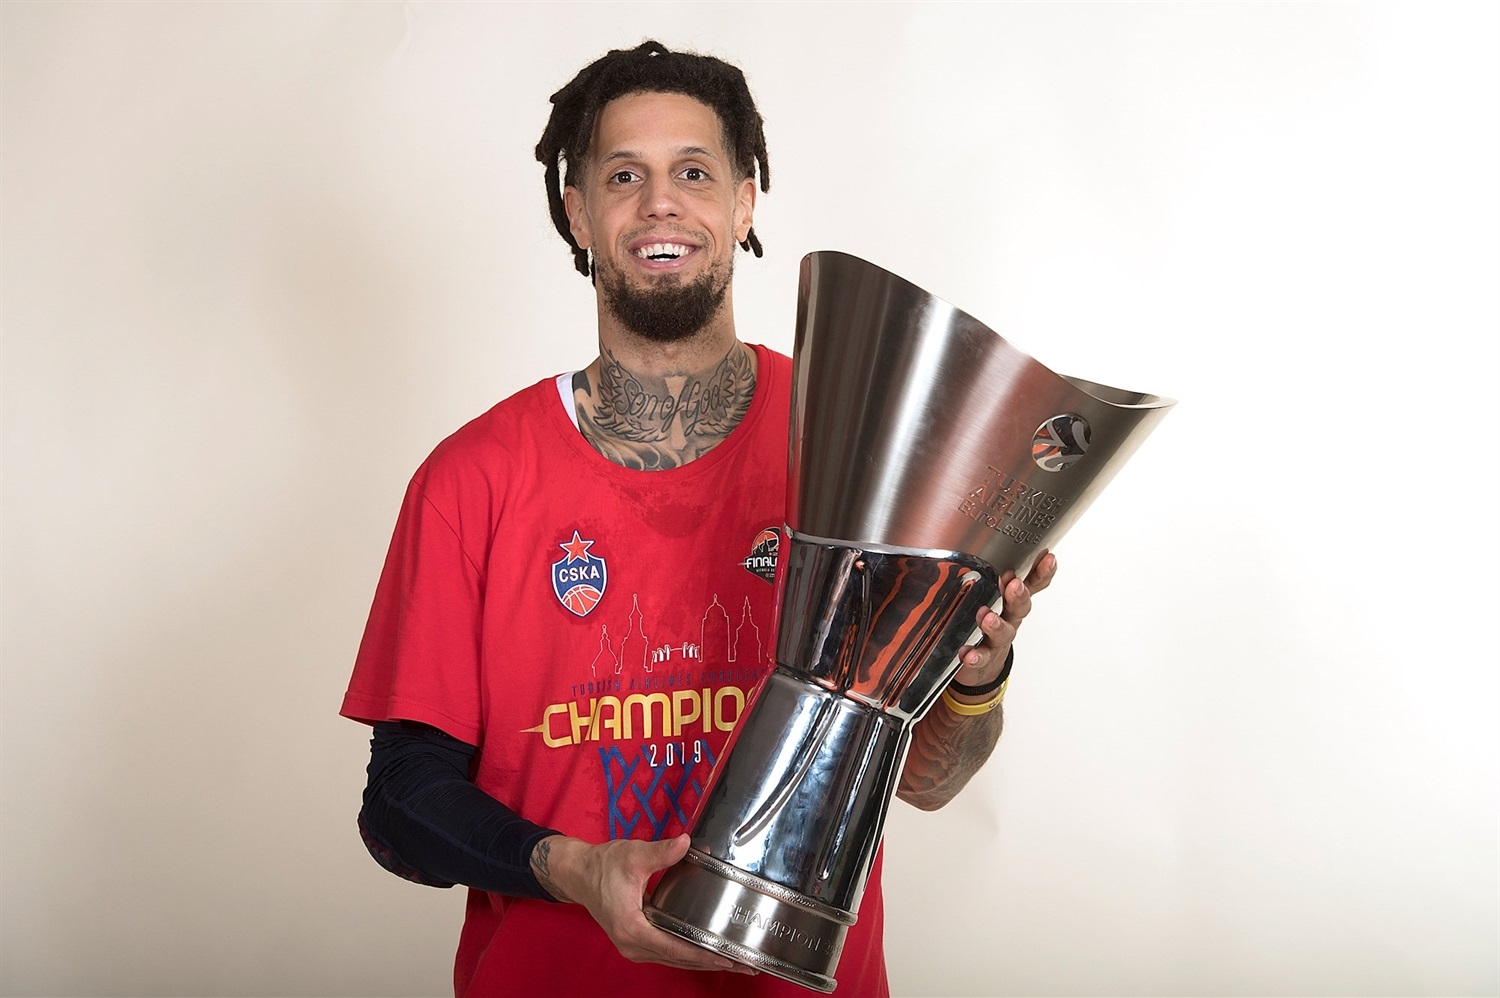 Daniel Hackett - CSKA trophy photo shoot - Final Four Vitoria-Gasteiz 2019 - EB18